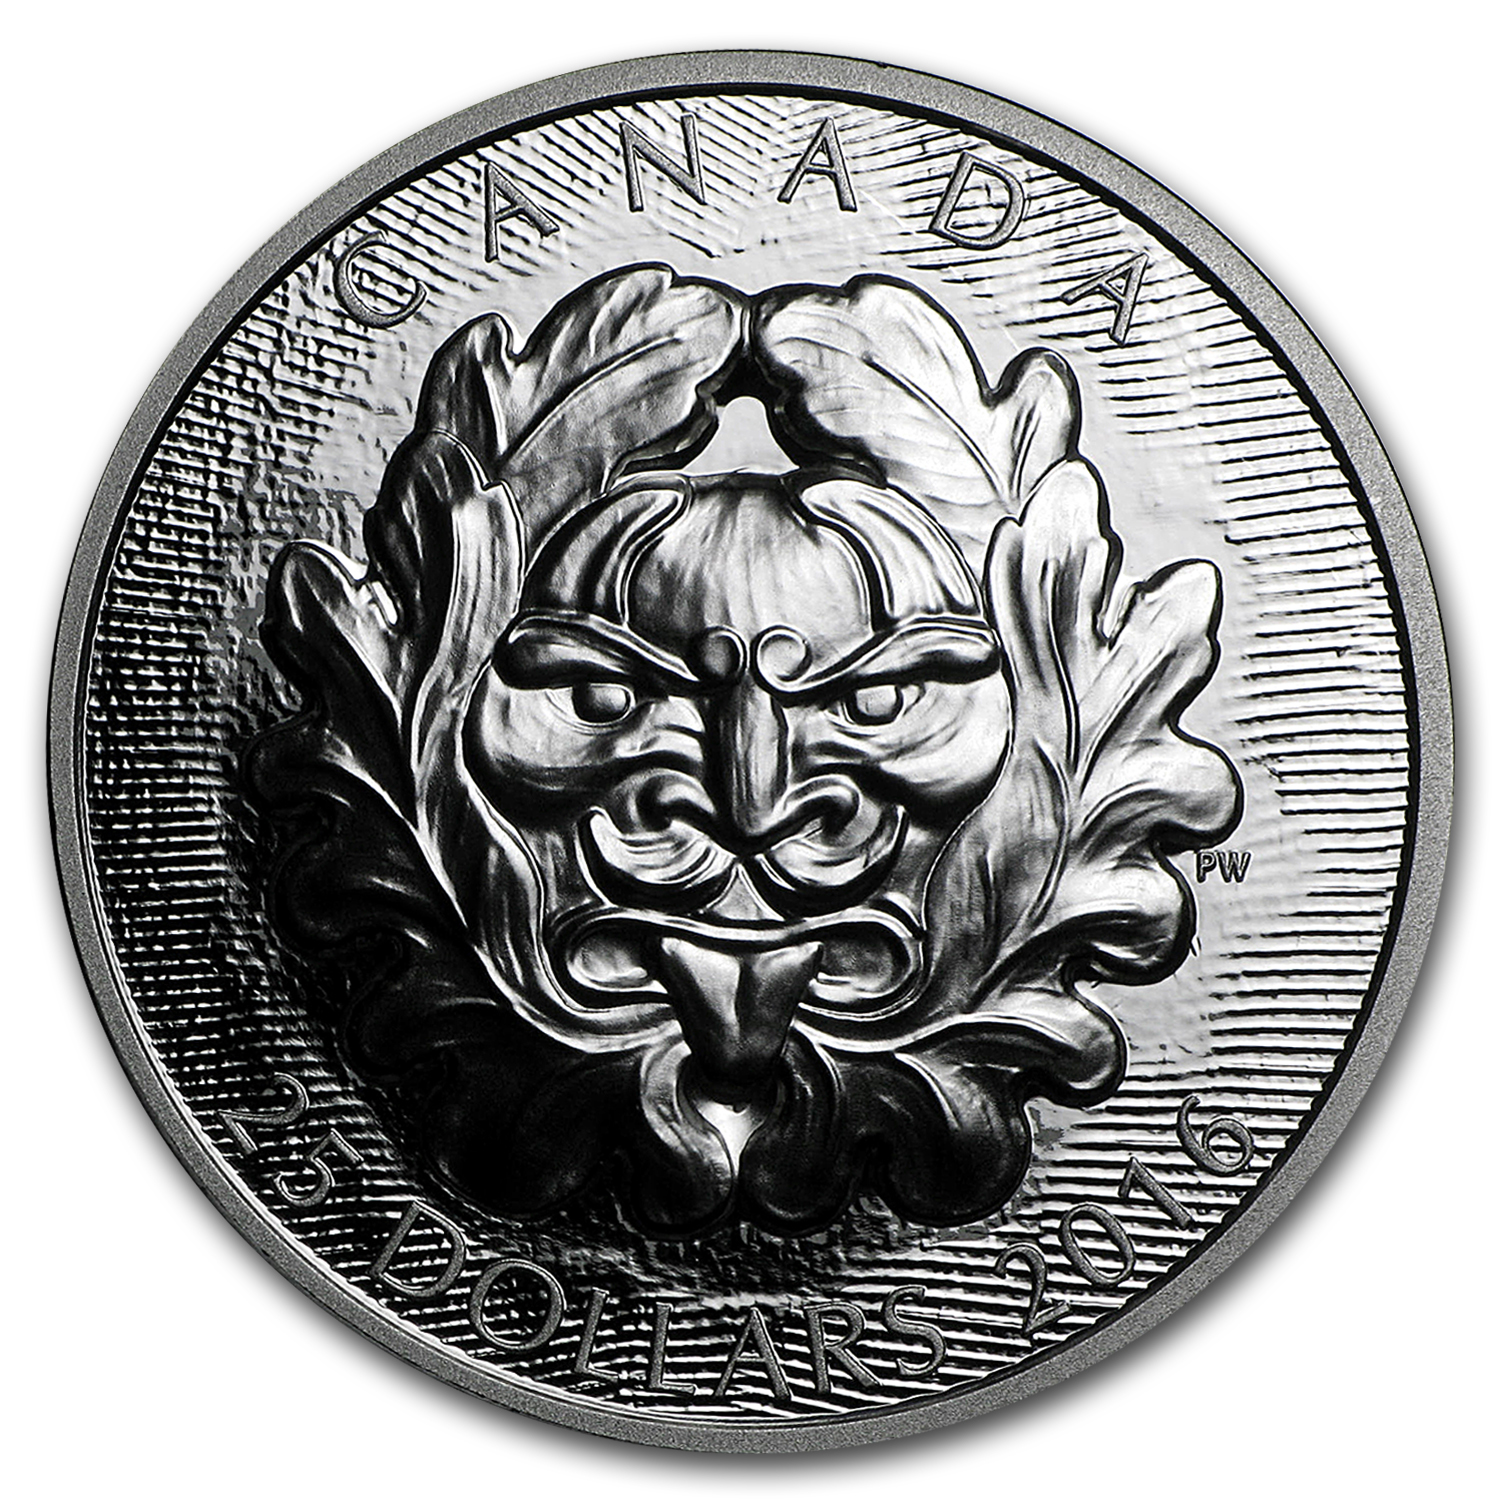 2016 Canada 1 oz Silver $25 Art of Parliament: Horned Green Man